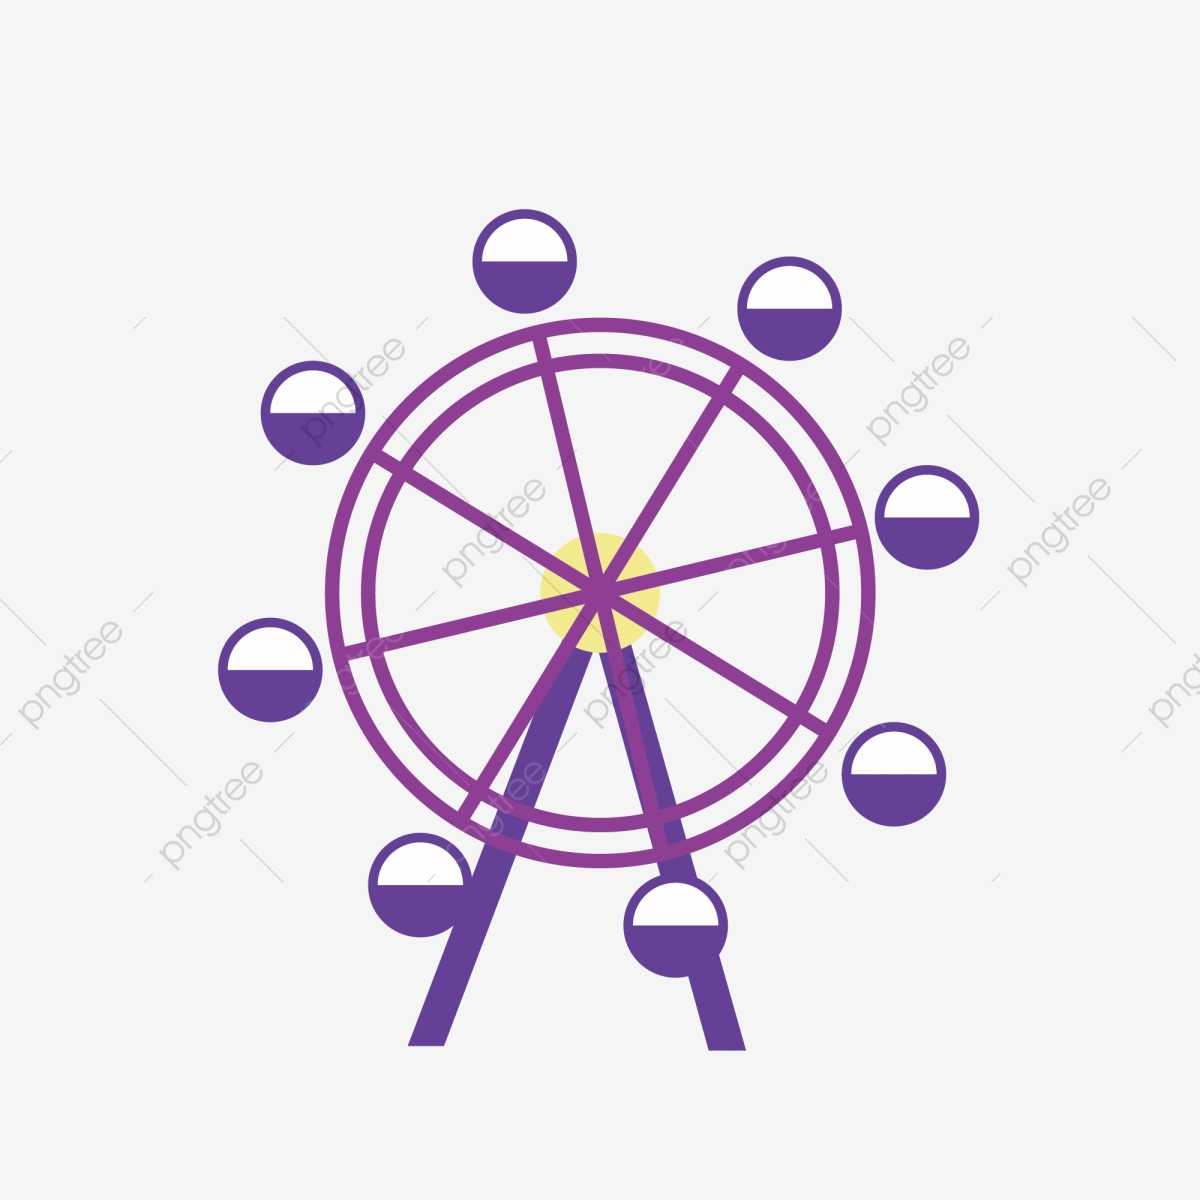 Cartoon Minimalist Ferris Wheel Illustration Cartoon Purple Simple Png And Vector With Transparent Background For Free Download